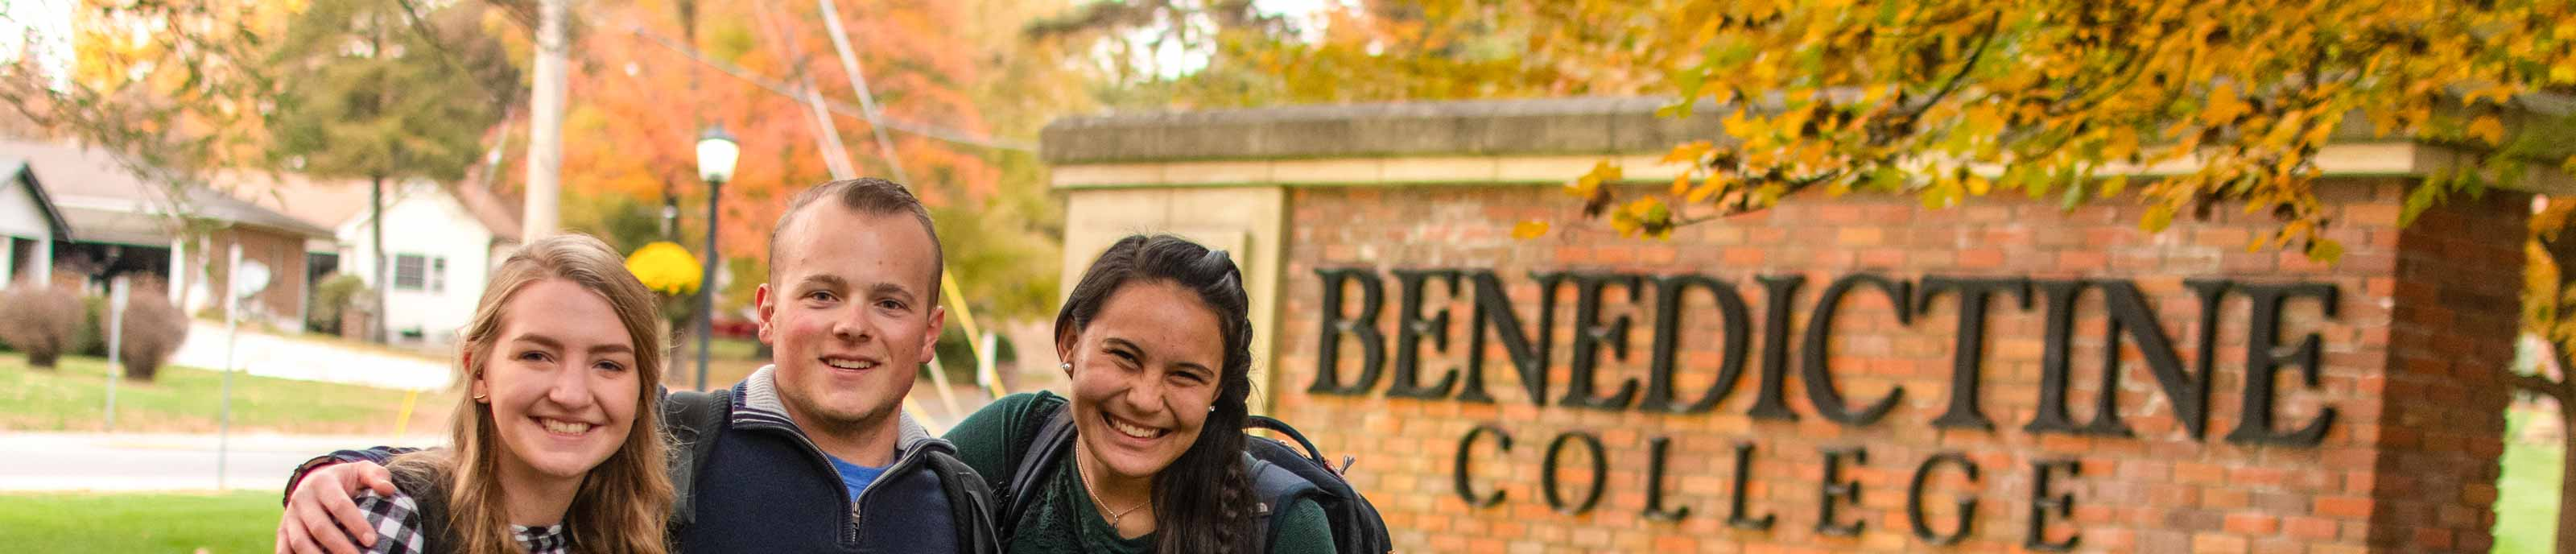 Three students pose for a photo in front of the Benedictine College entrance sign